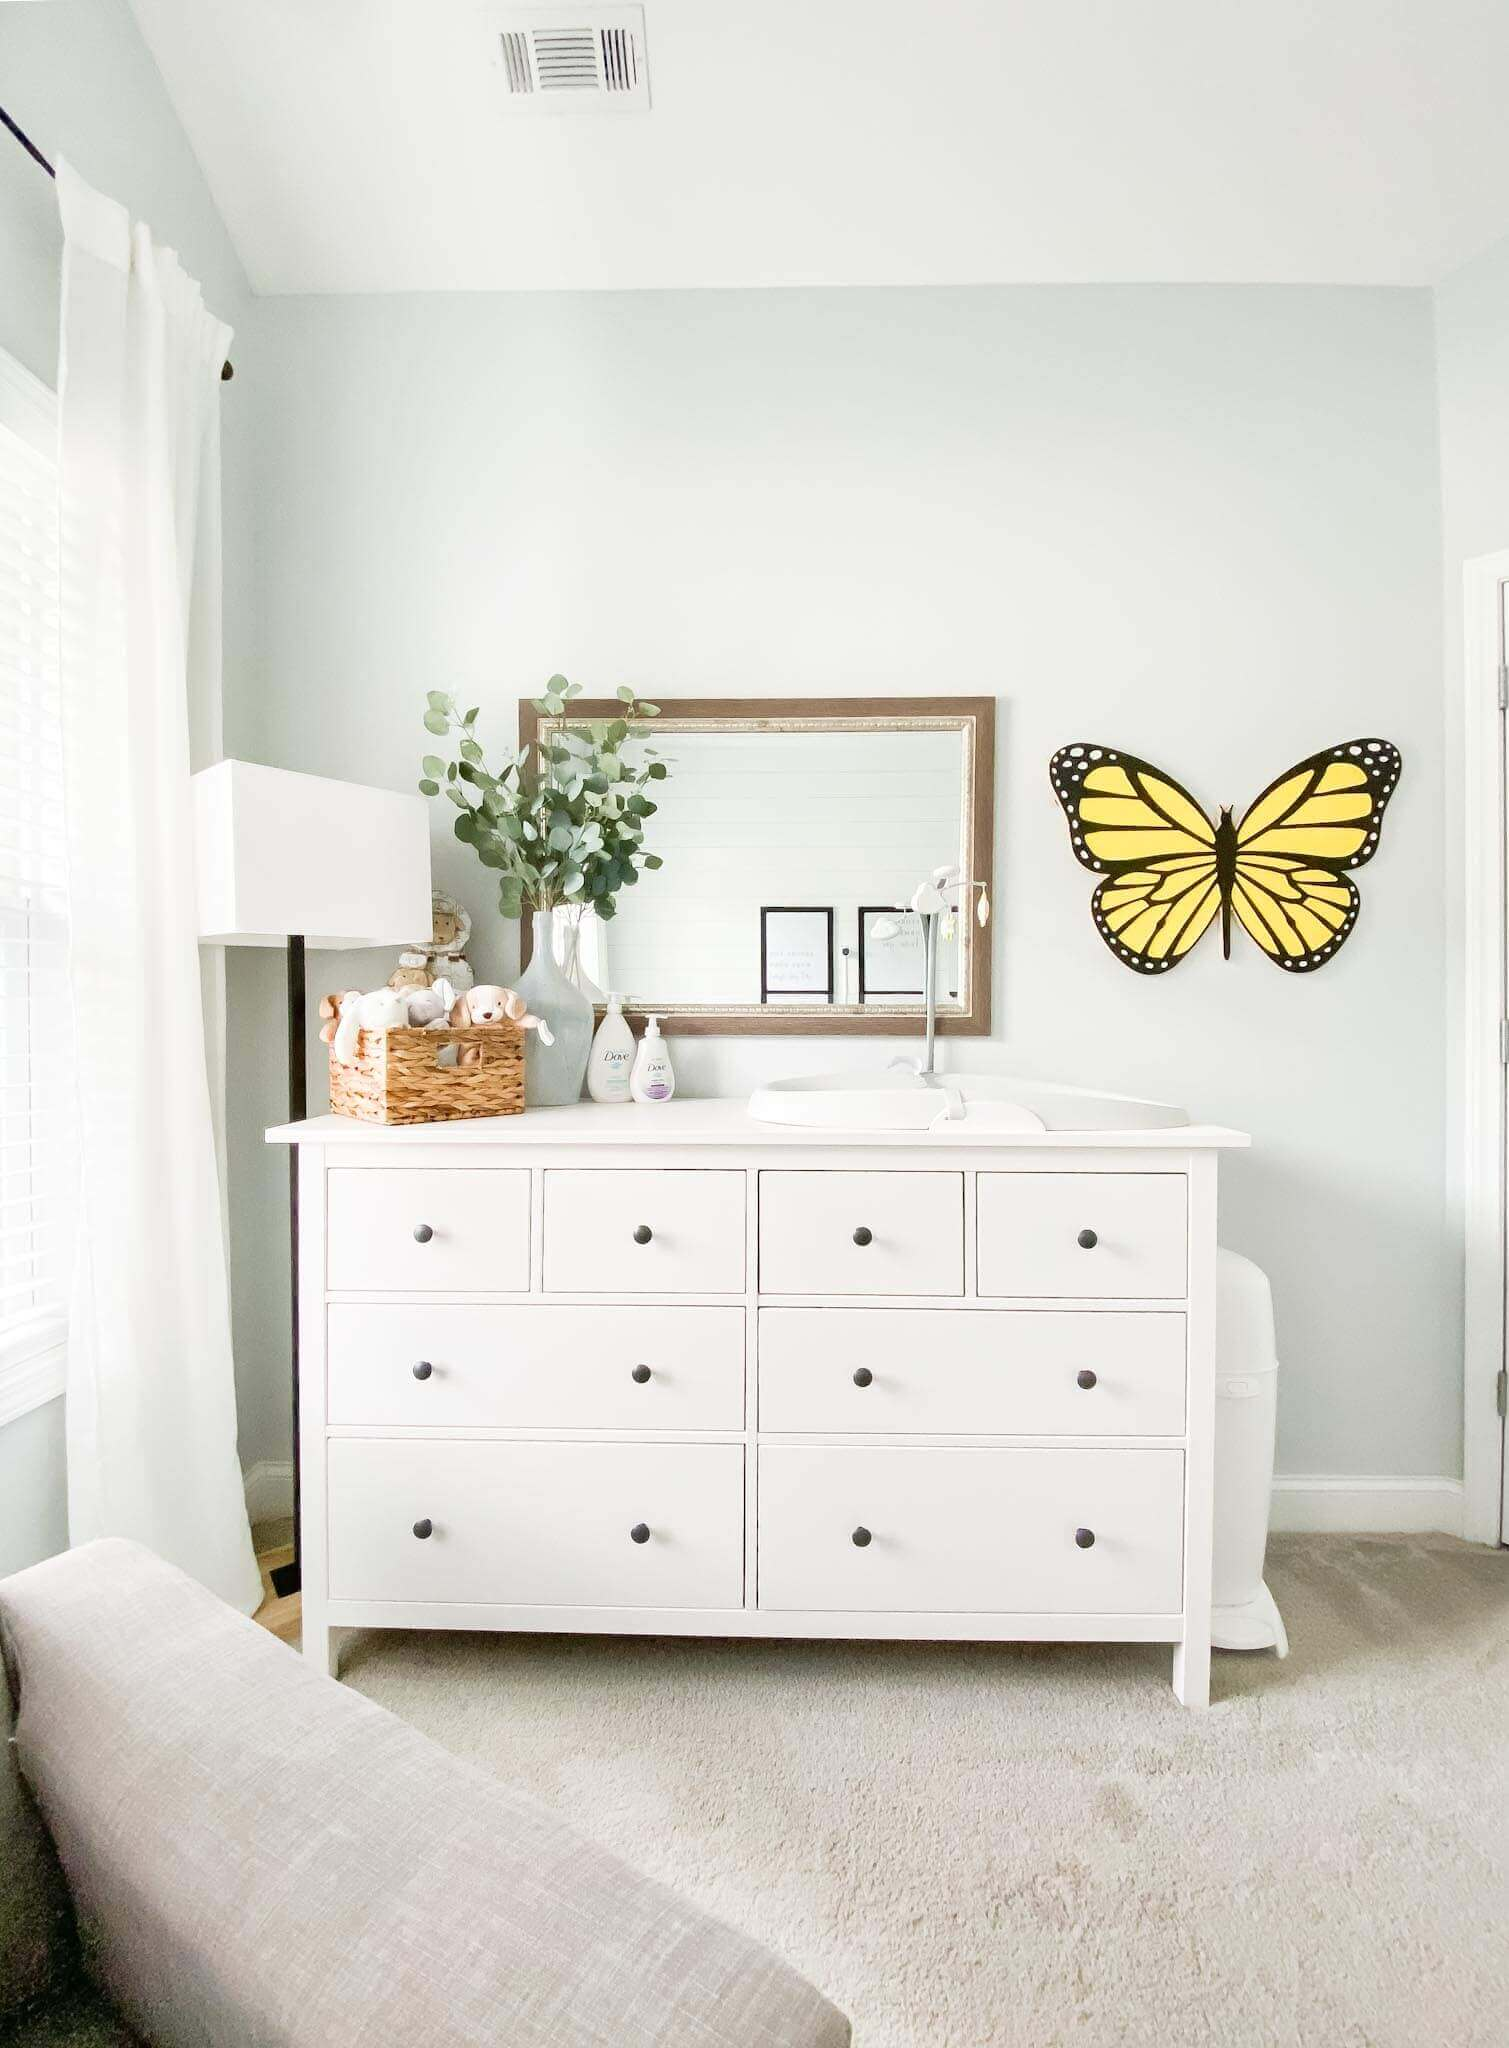 John Robert Nursery Reveal // Baby Boy Nursery // A Hosting Home Blog